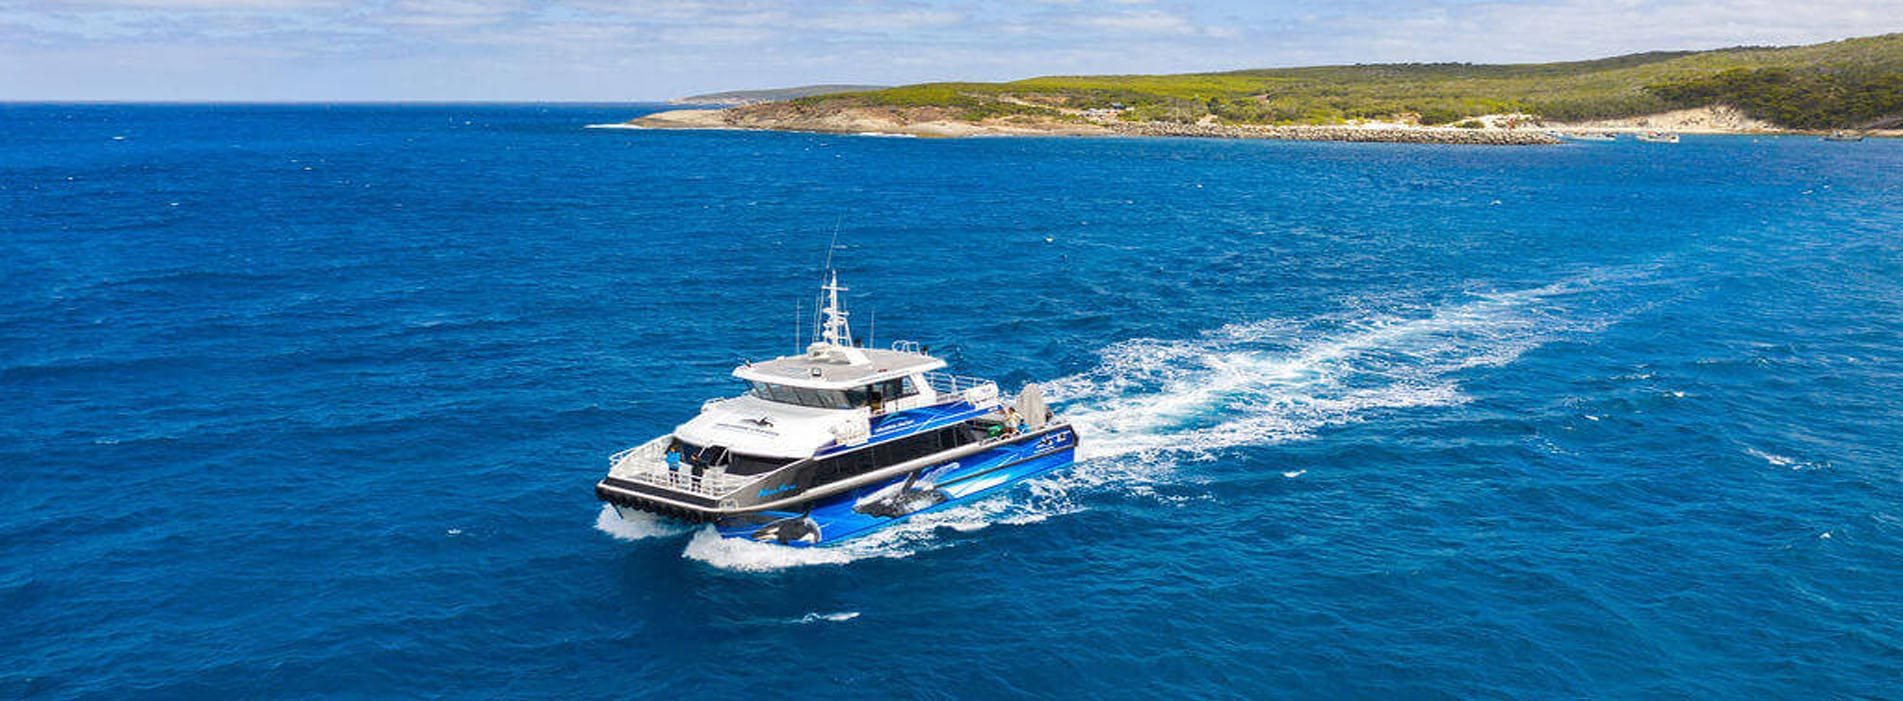 ALISON MAREE WHALE WATCHING TOURS